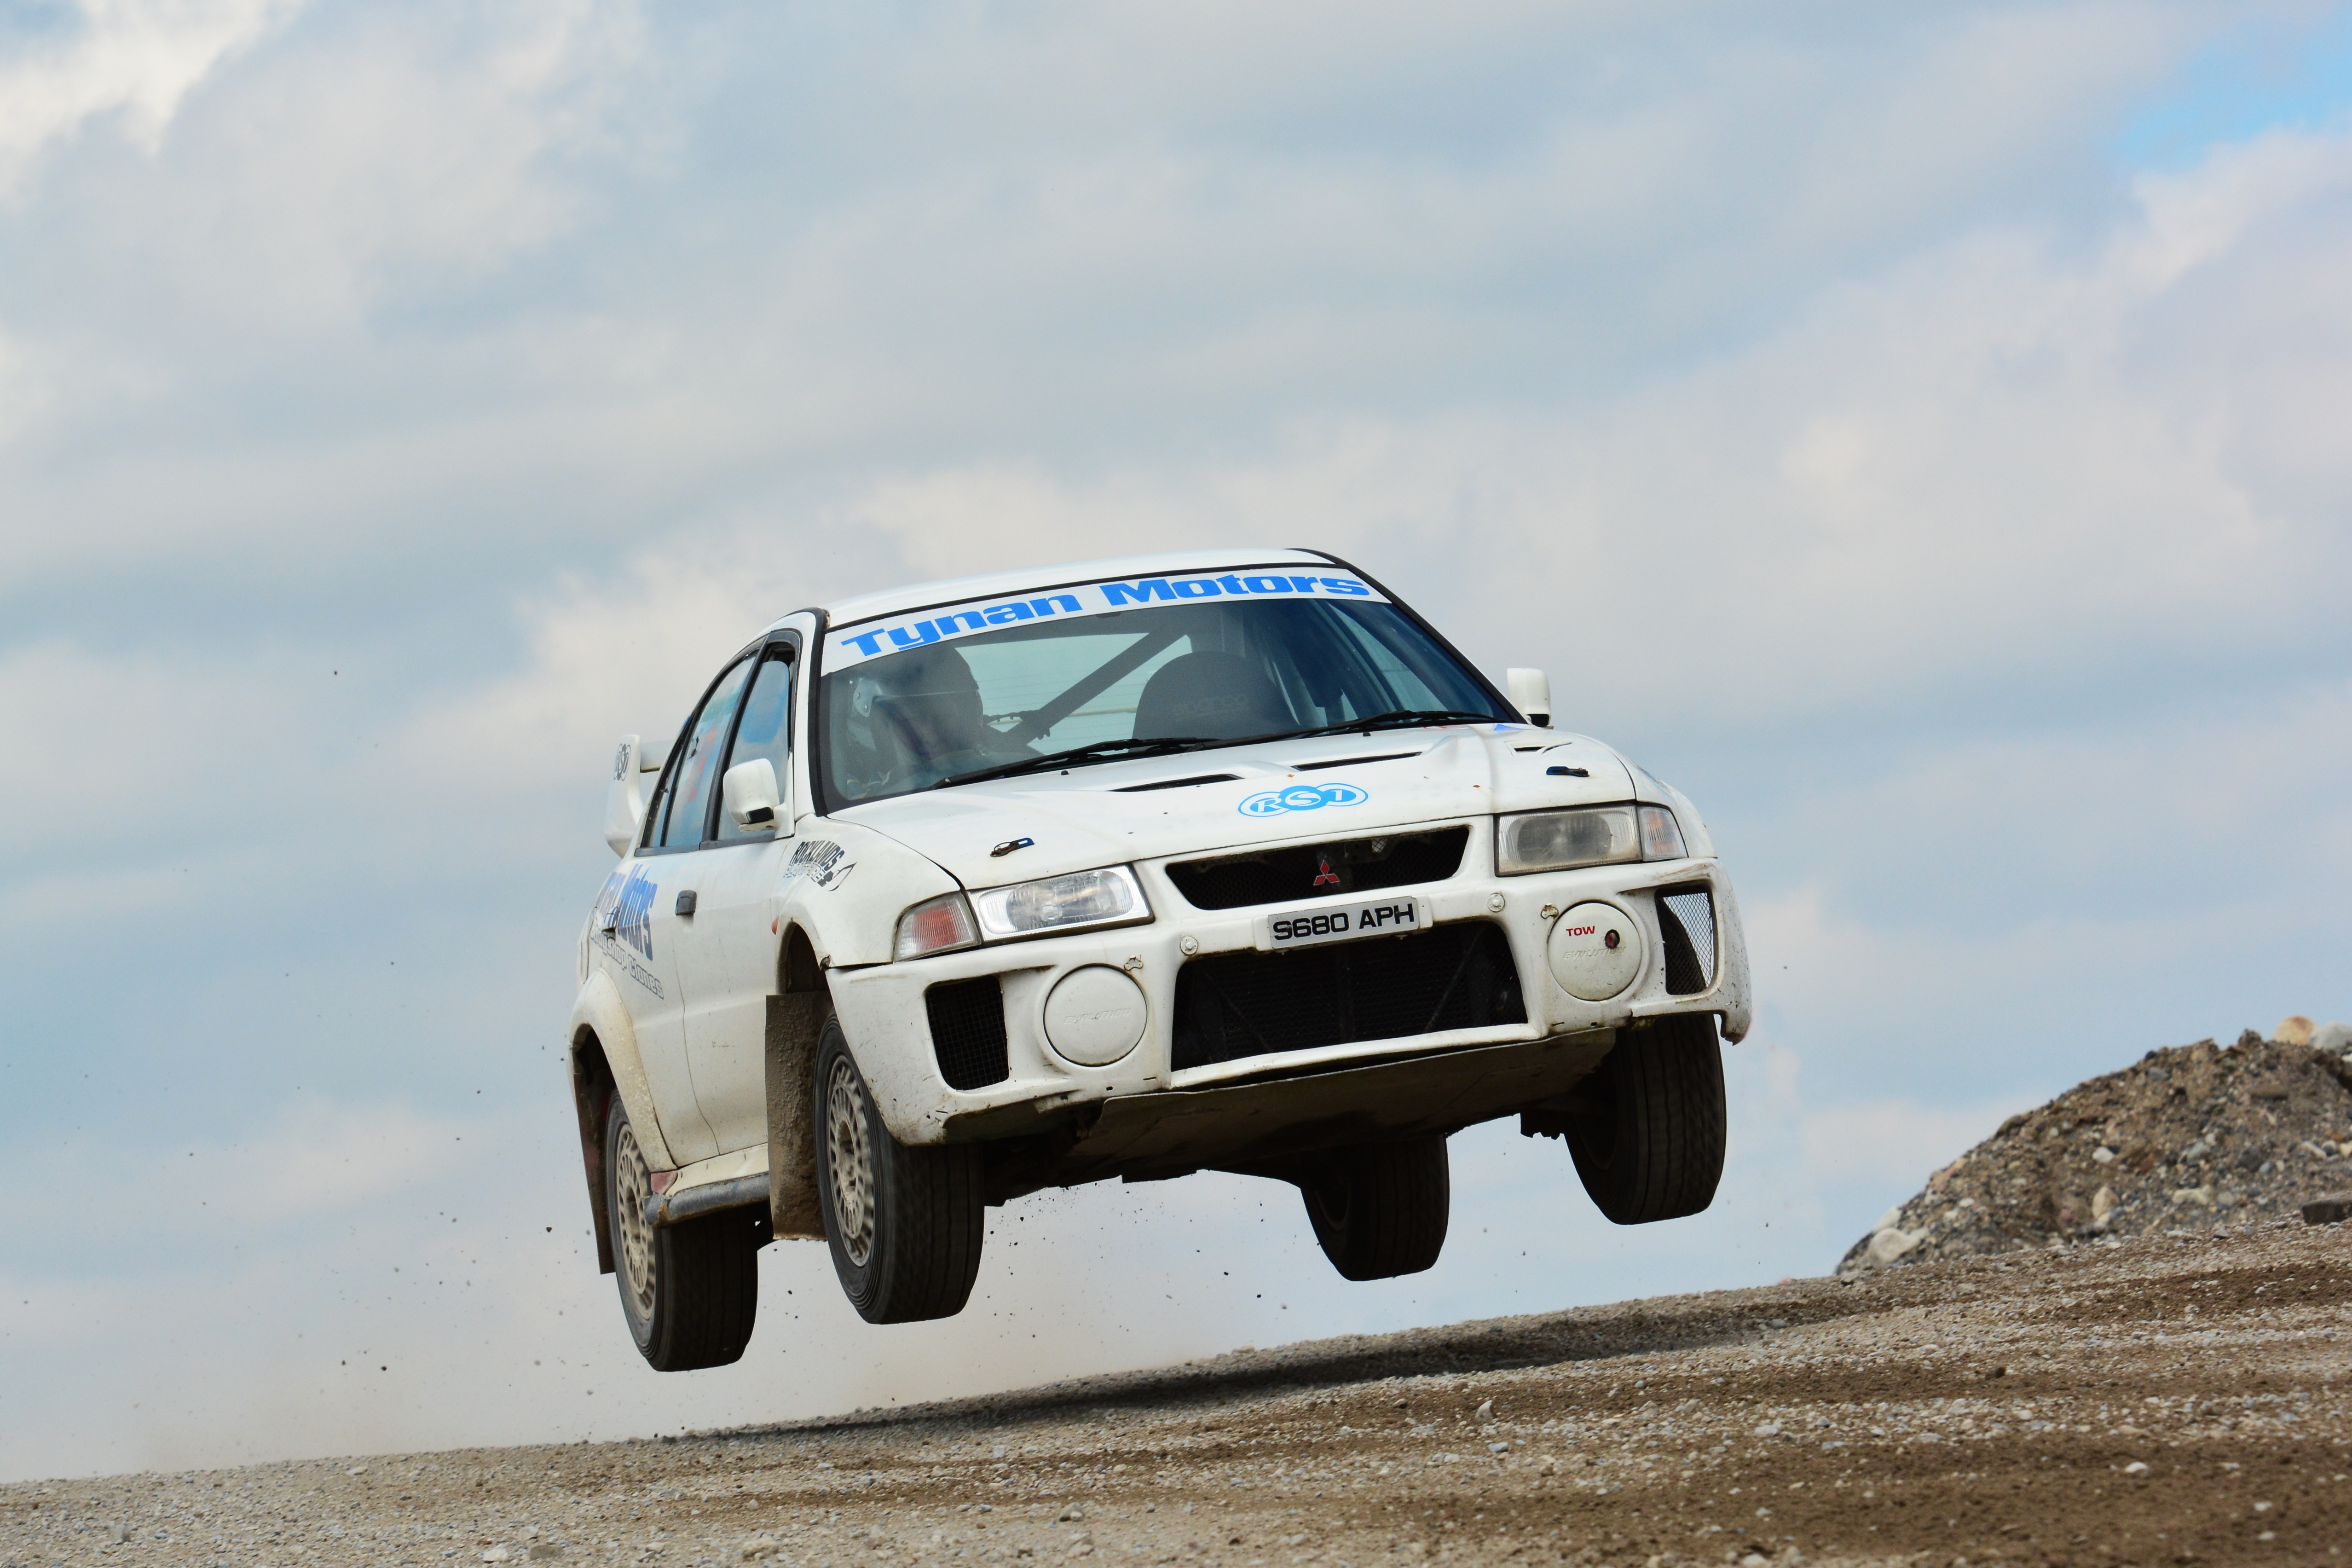 Winner Tynan Flying high at Mayo Autocross (1)